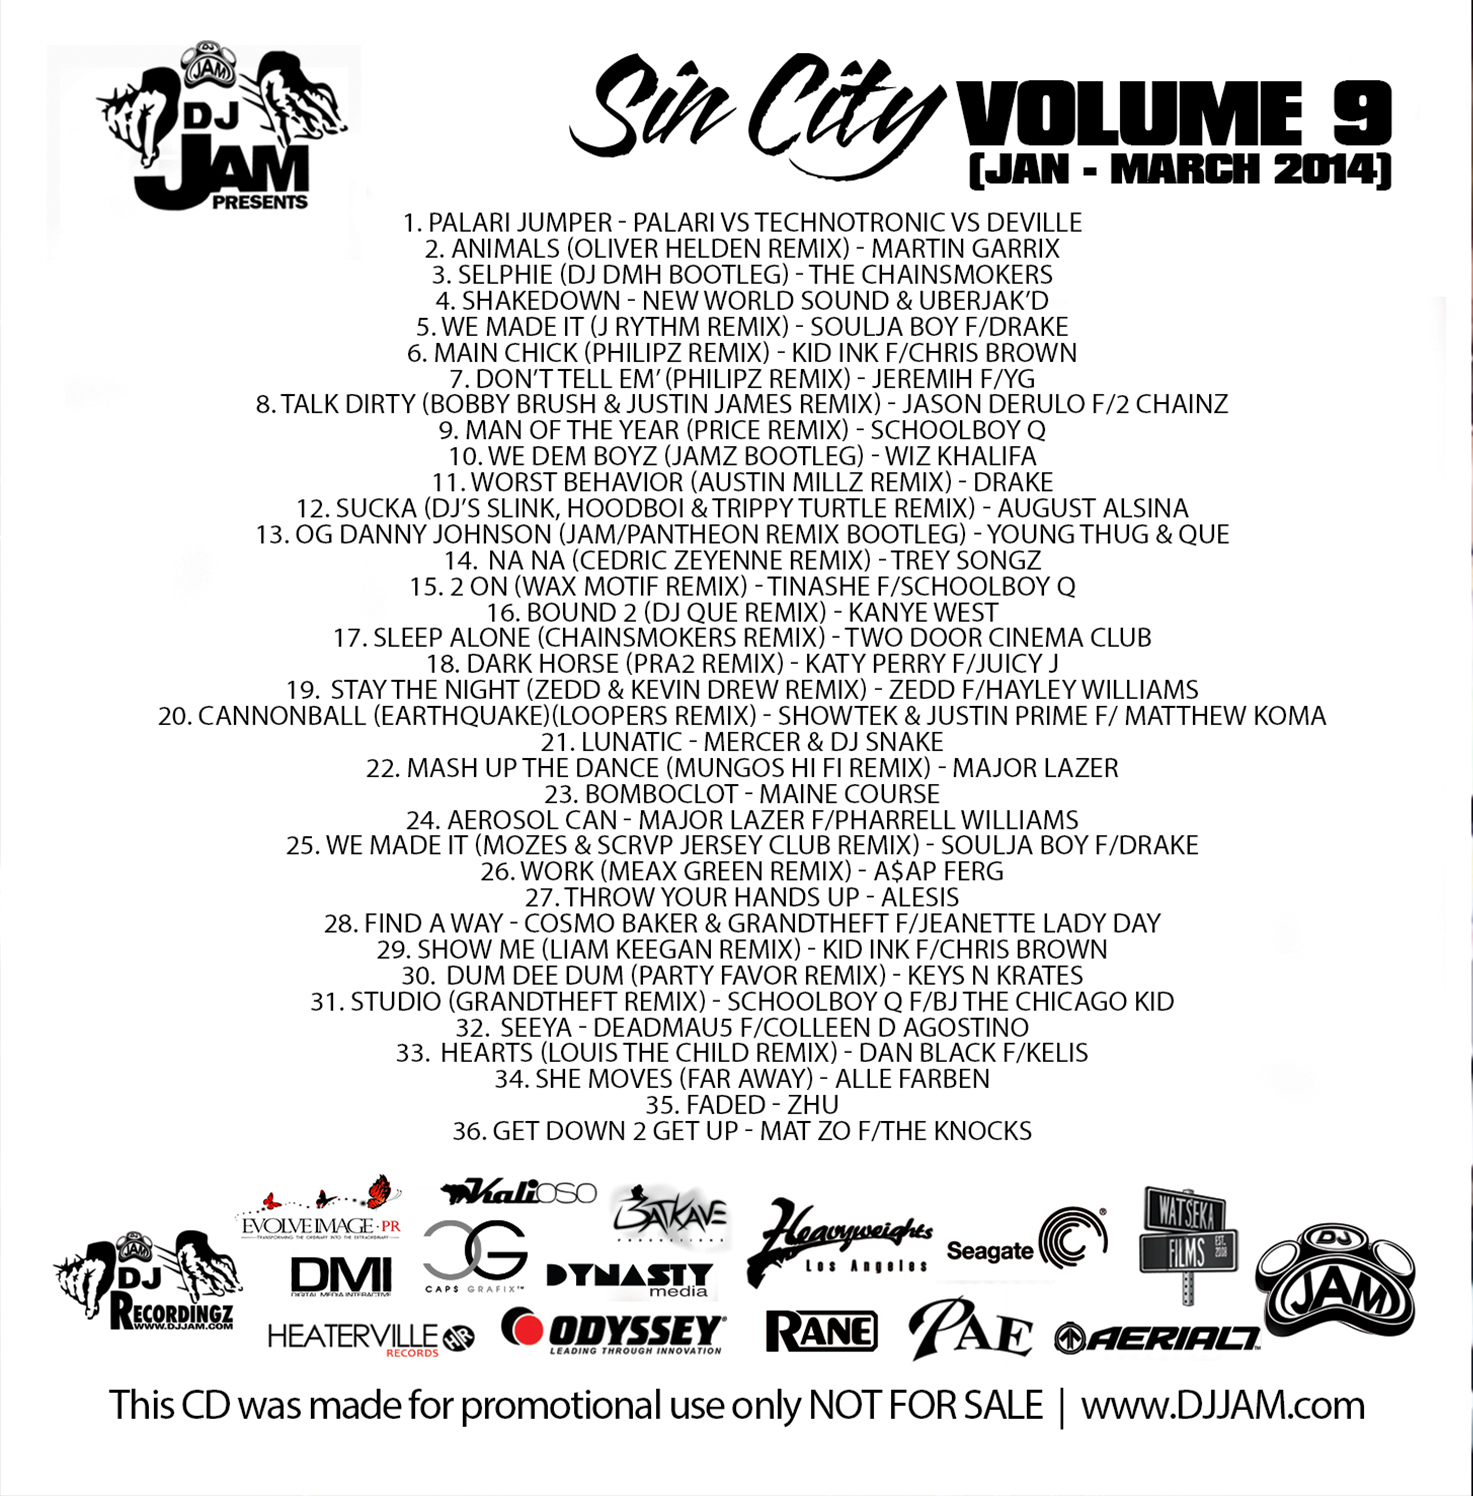 "NEW MUSIC"" SIN CITY VOL  9 EDM vs HIP-HOP/RnB/POP (JAN - MARCH 2014"